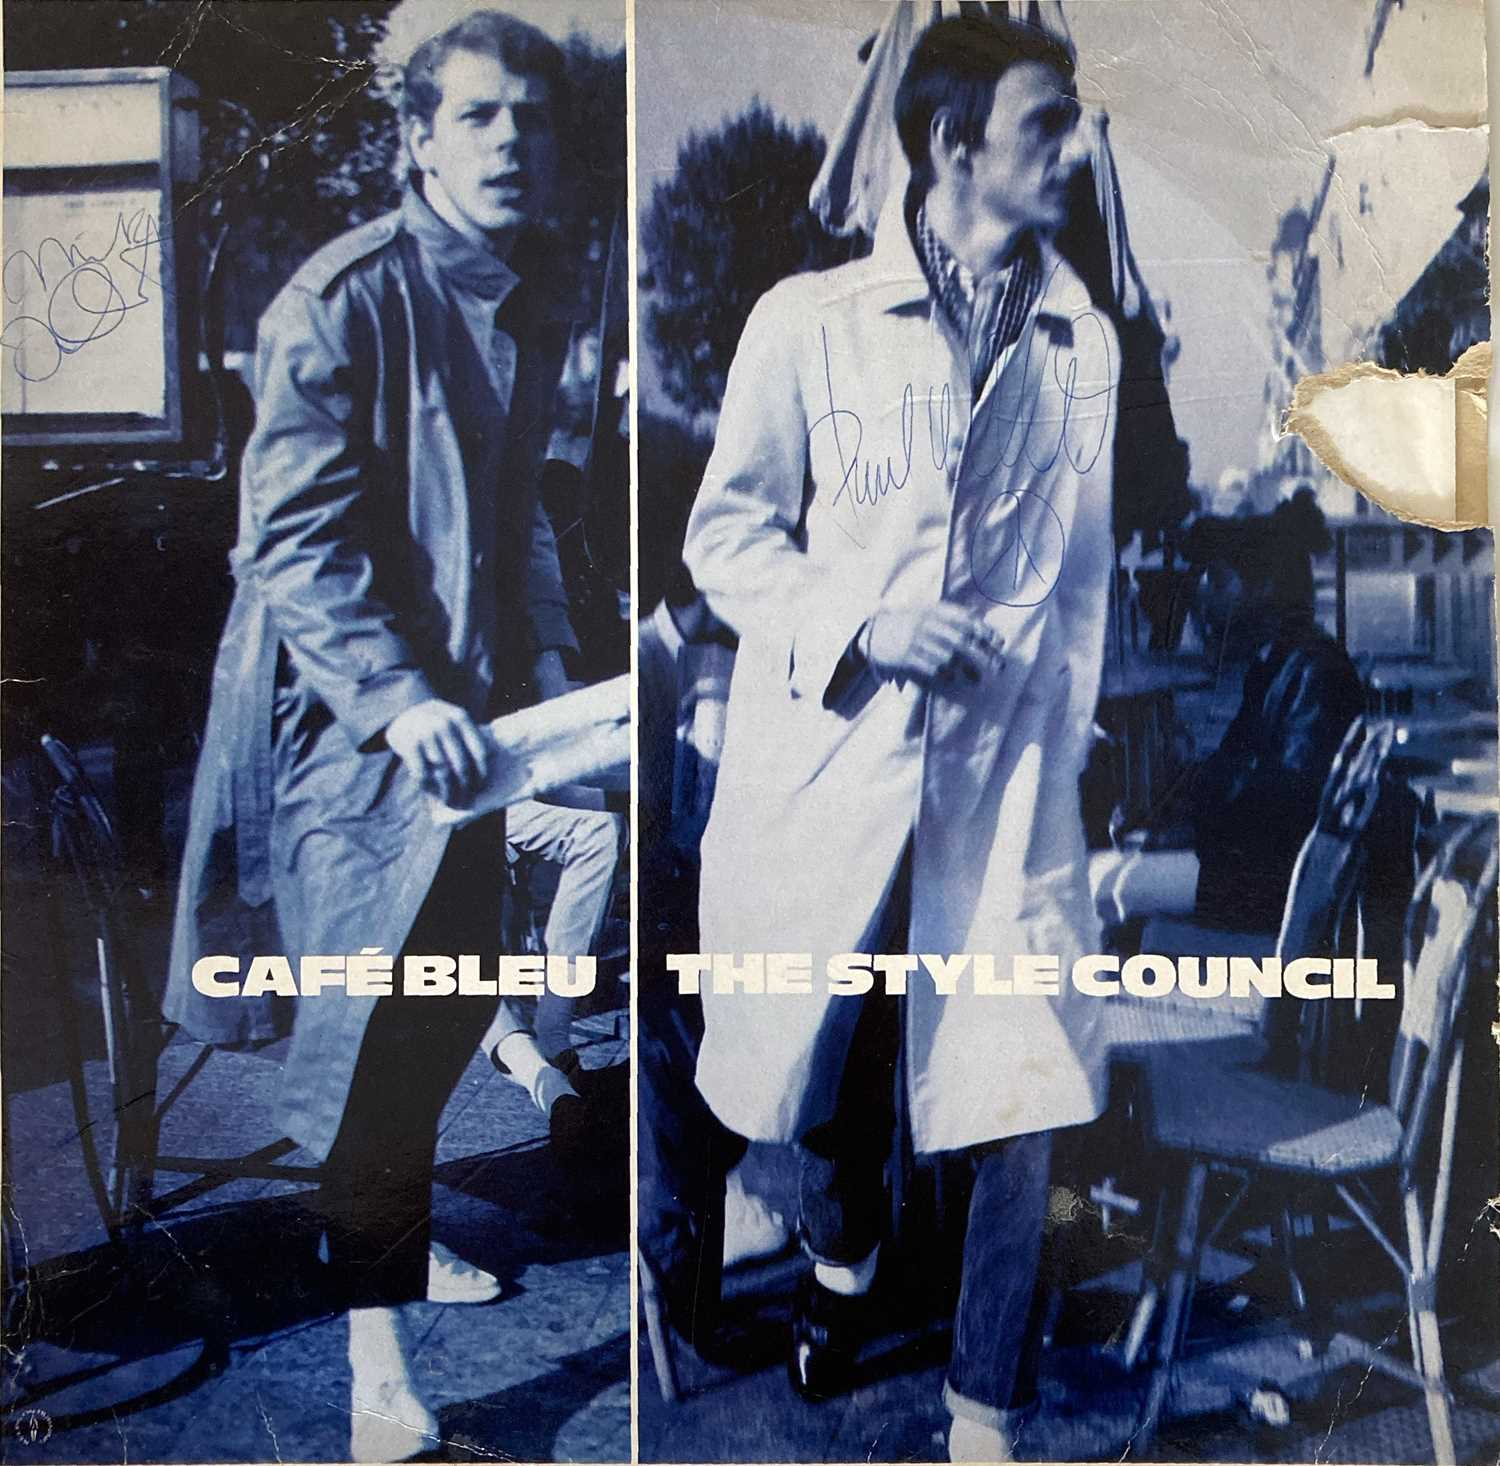 THE STYLE COUNCIL - SIGNED LPS.